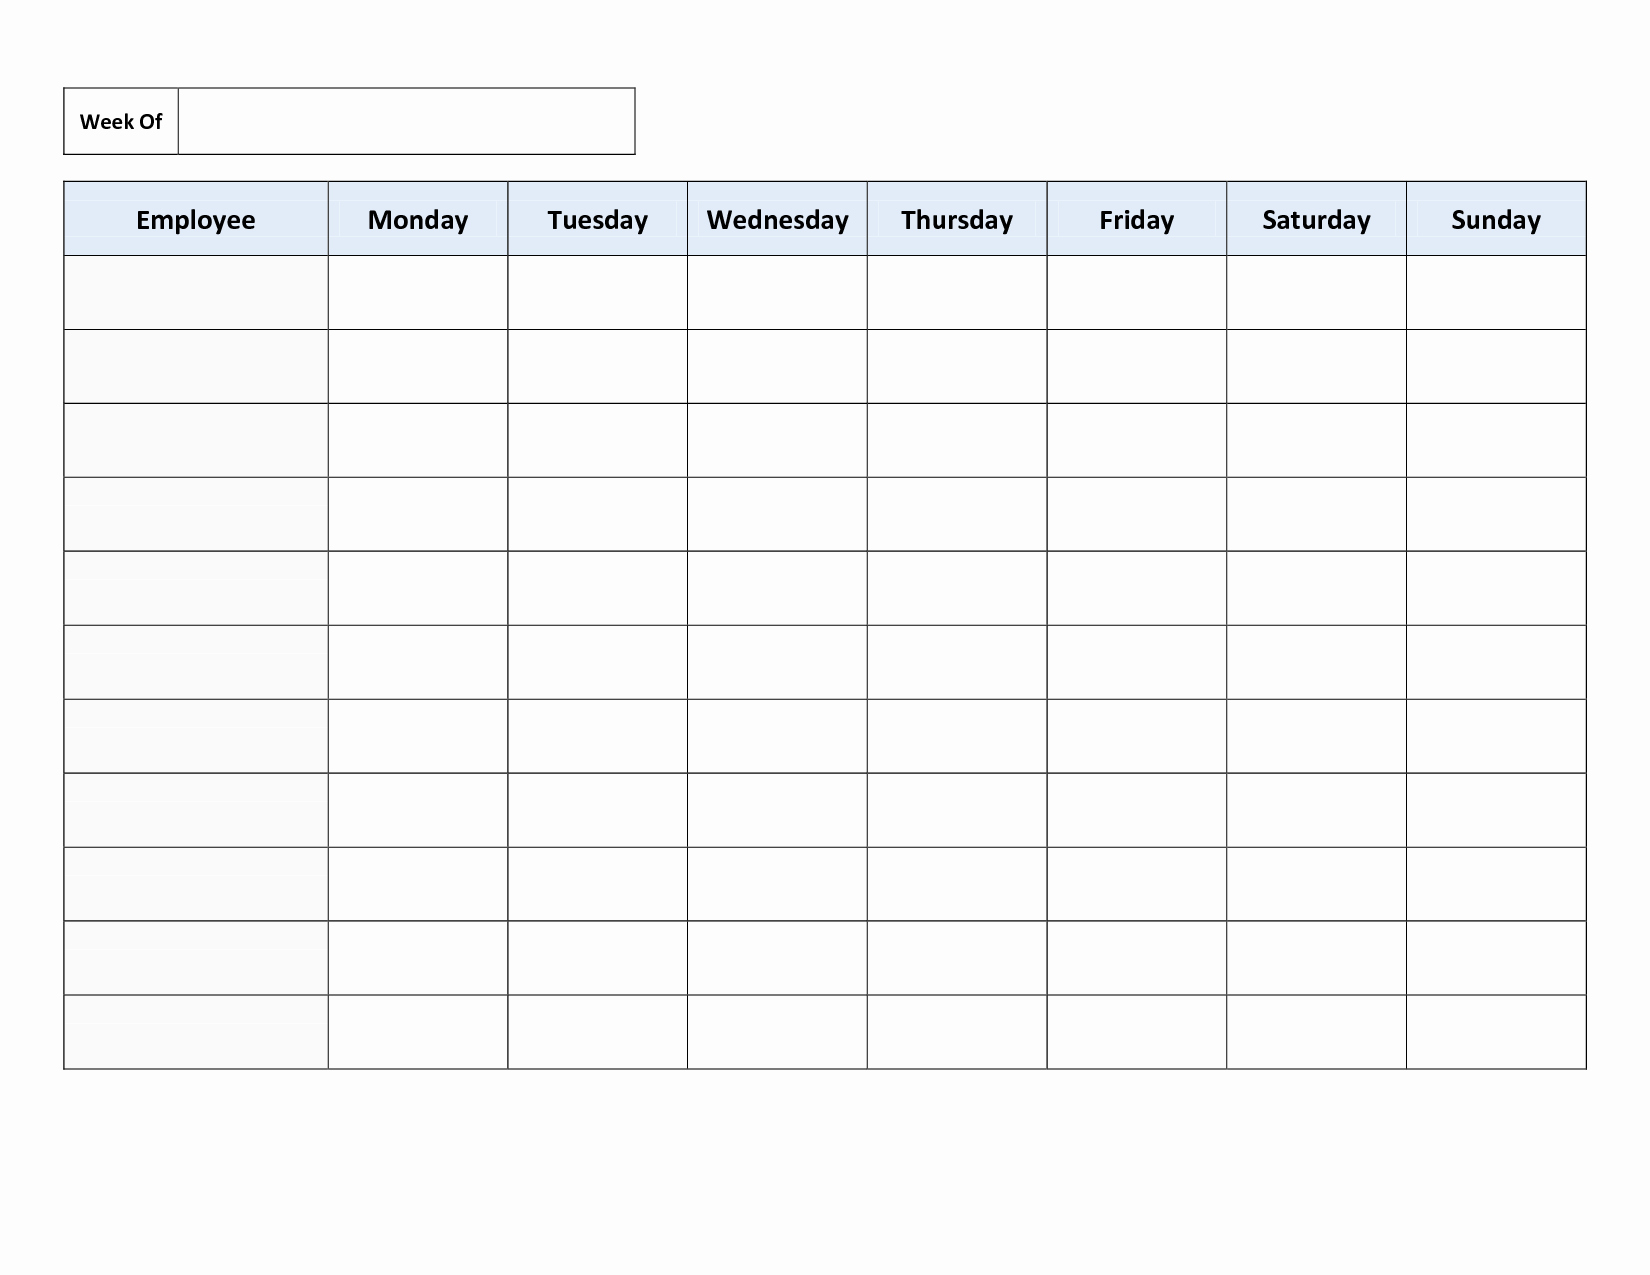 Work Schedule Template Free New Free Weekly Employee Work Schedule Template